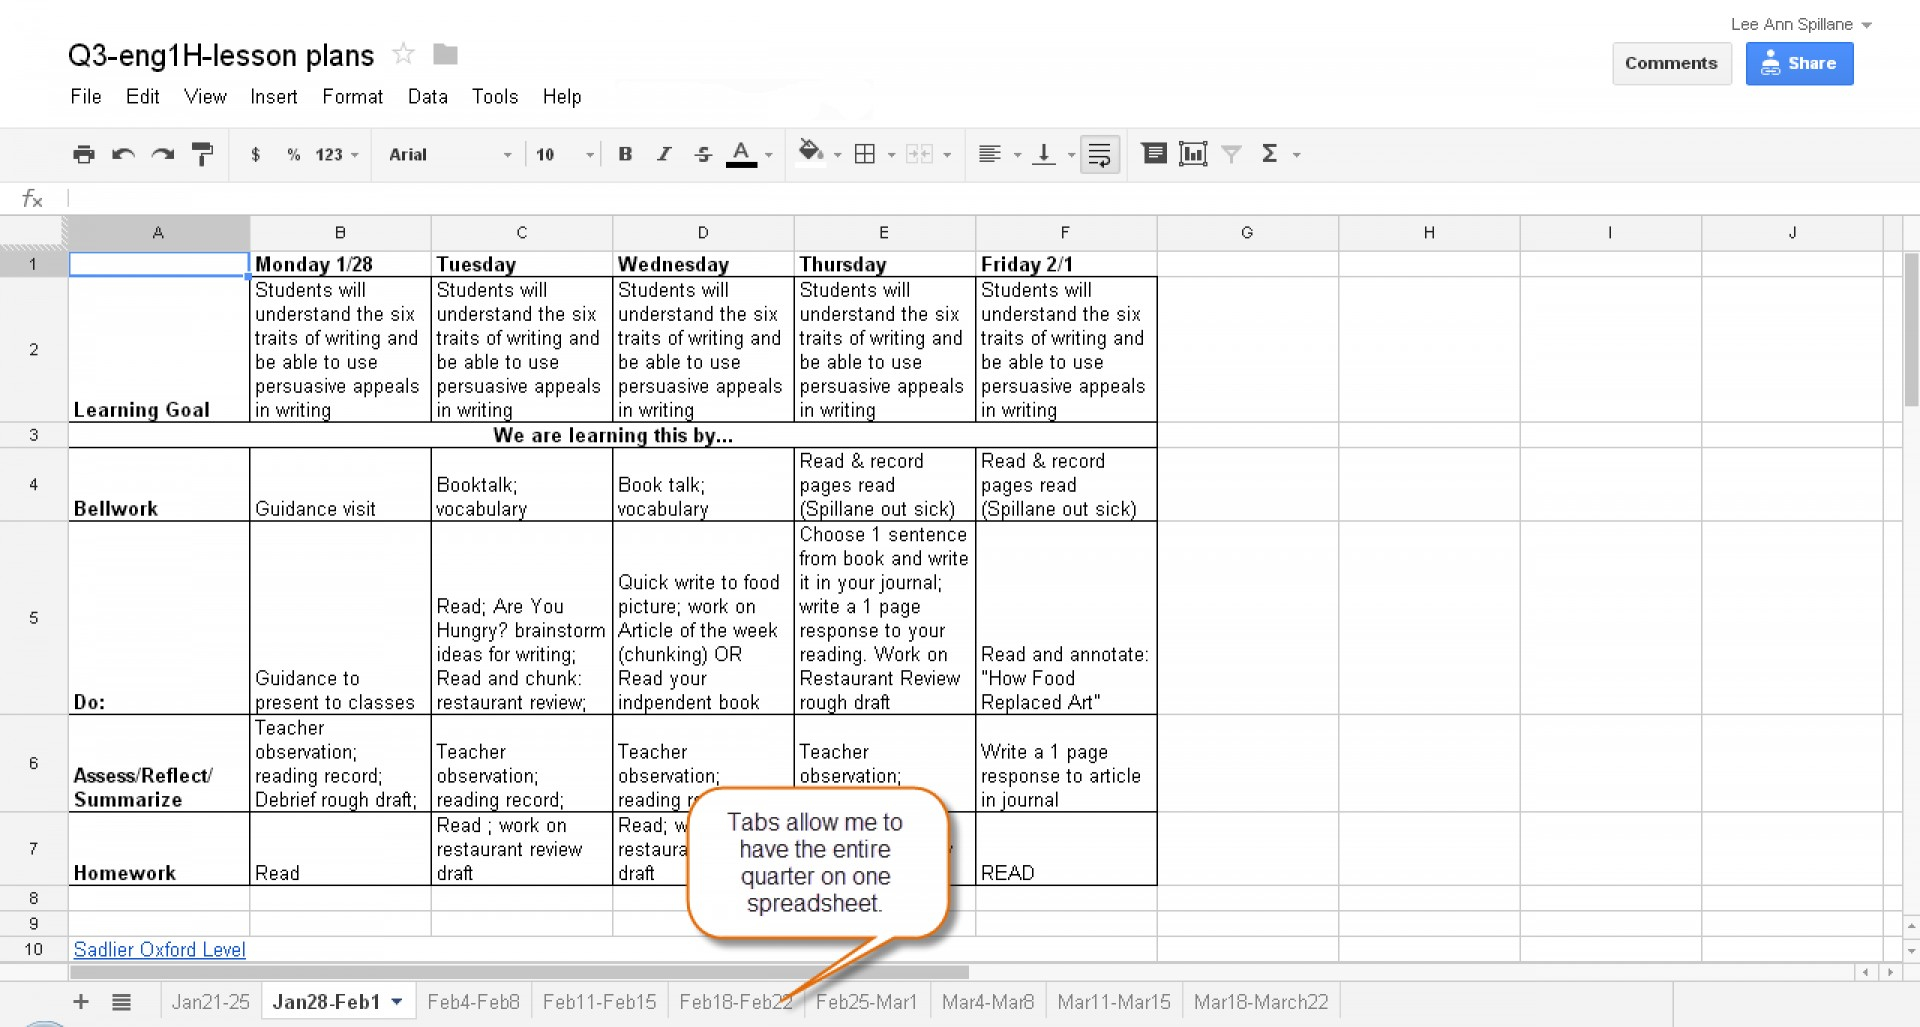 Document Of Lesson Plan For Excel Spreadsheet With Lesson Plan For Excel Spreadsheet Format